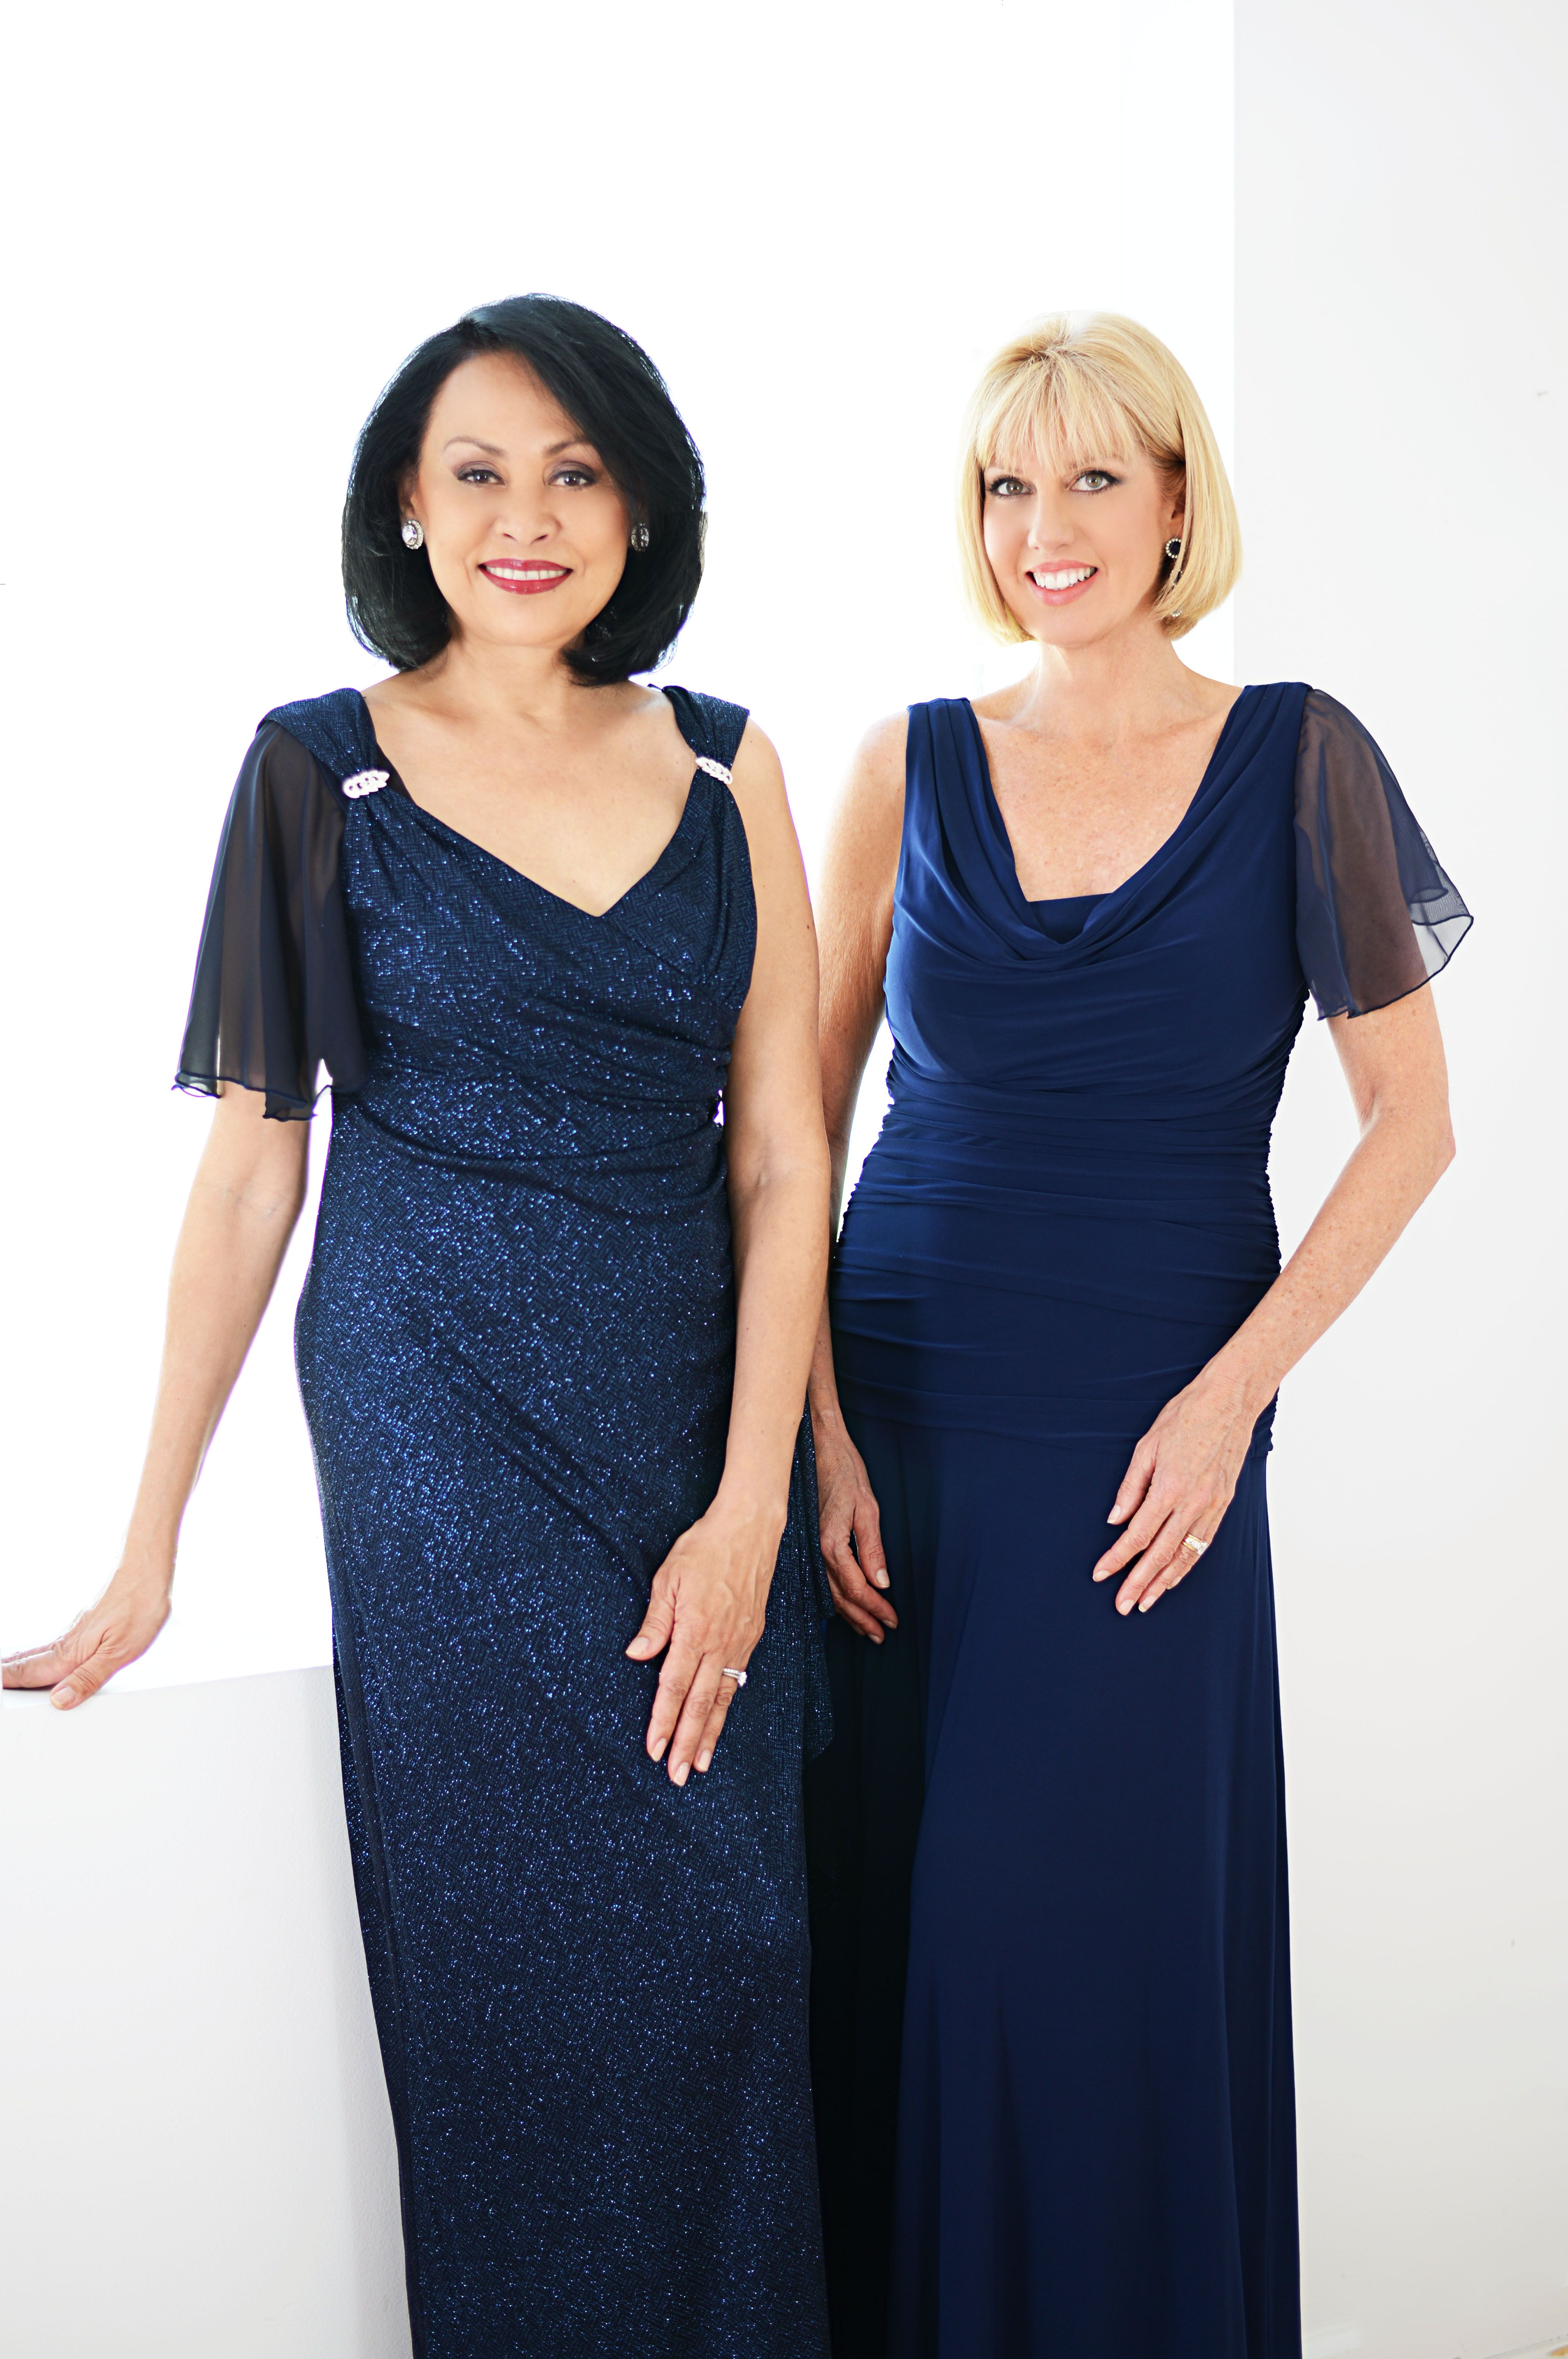 For Special Occasion Drama, Pair up a classic gown with delicate detachable Sleeves & forget the Bolero